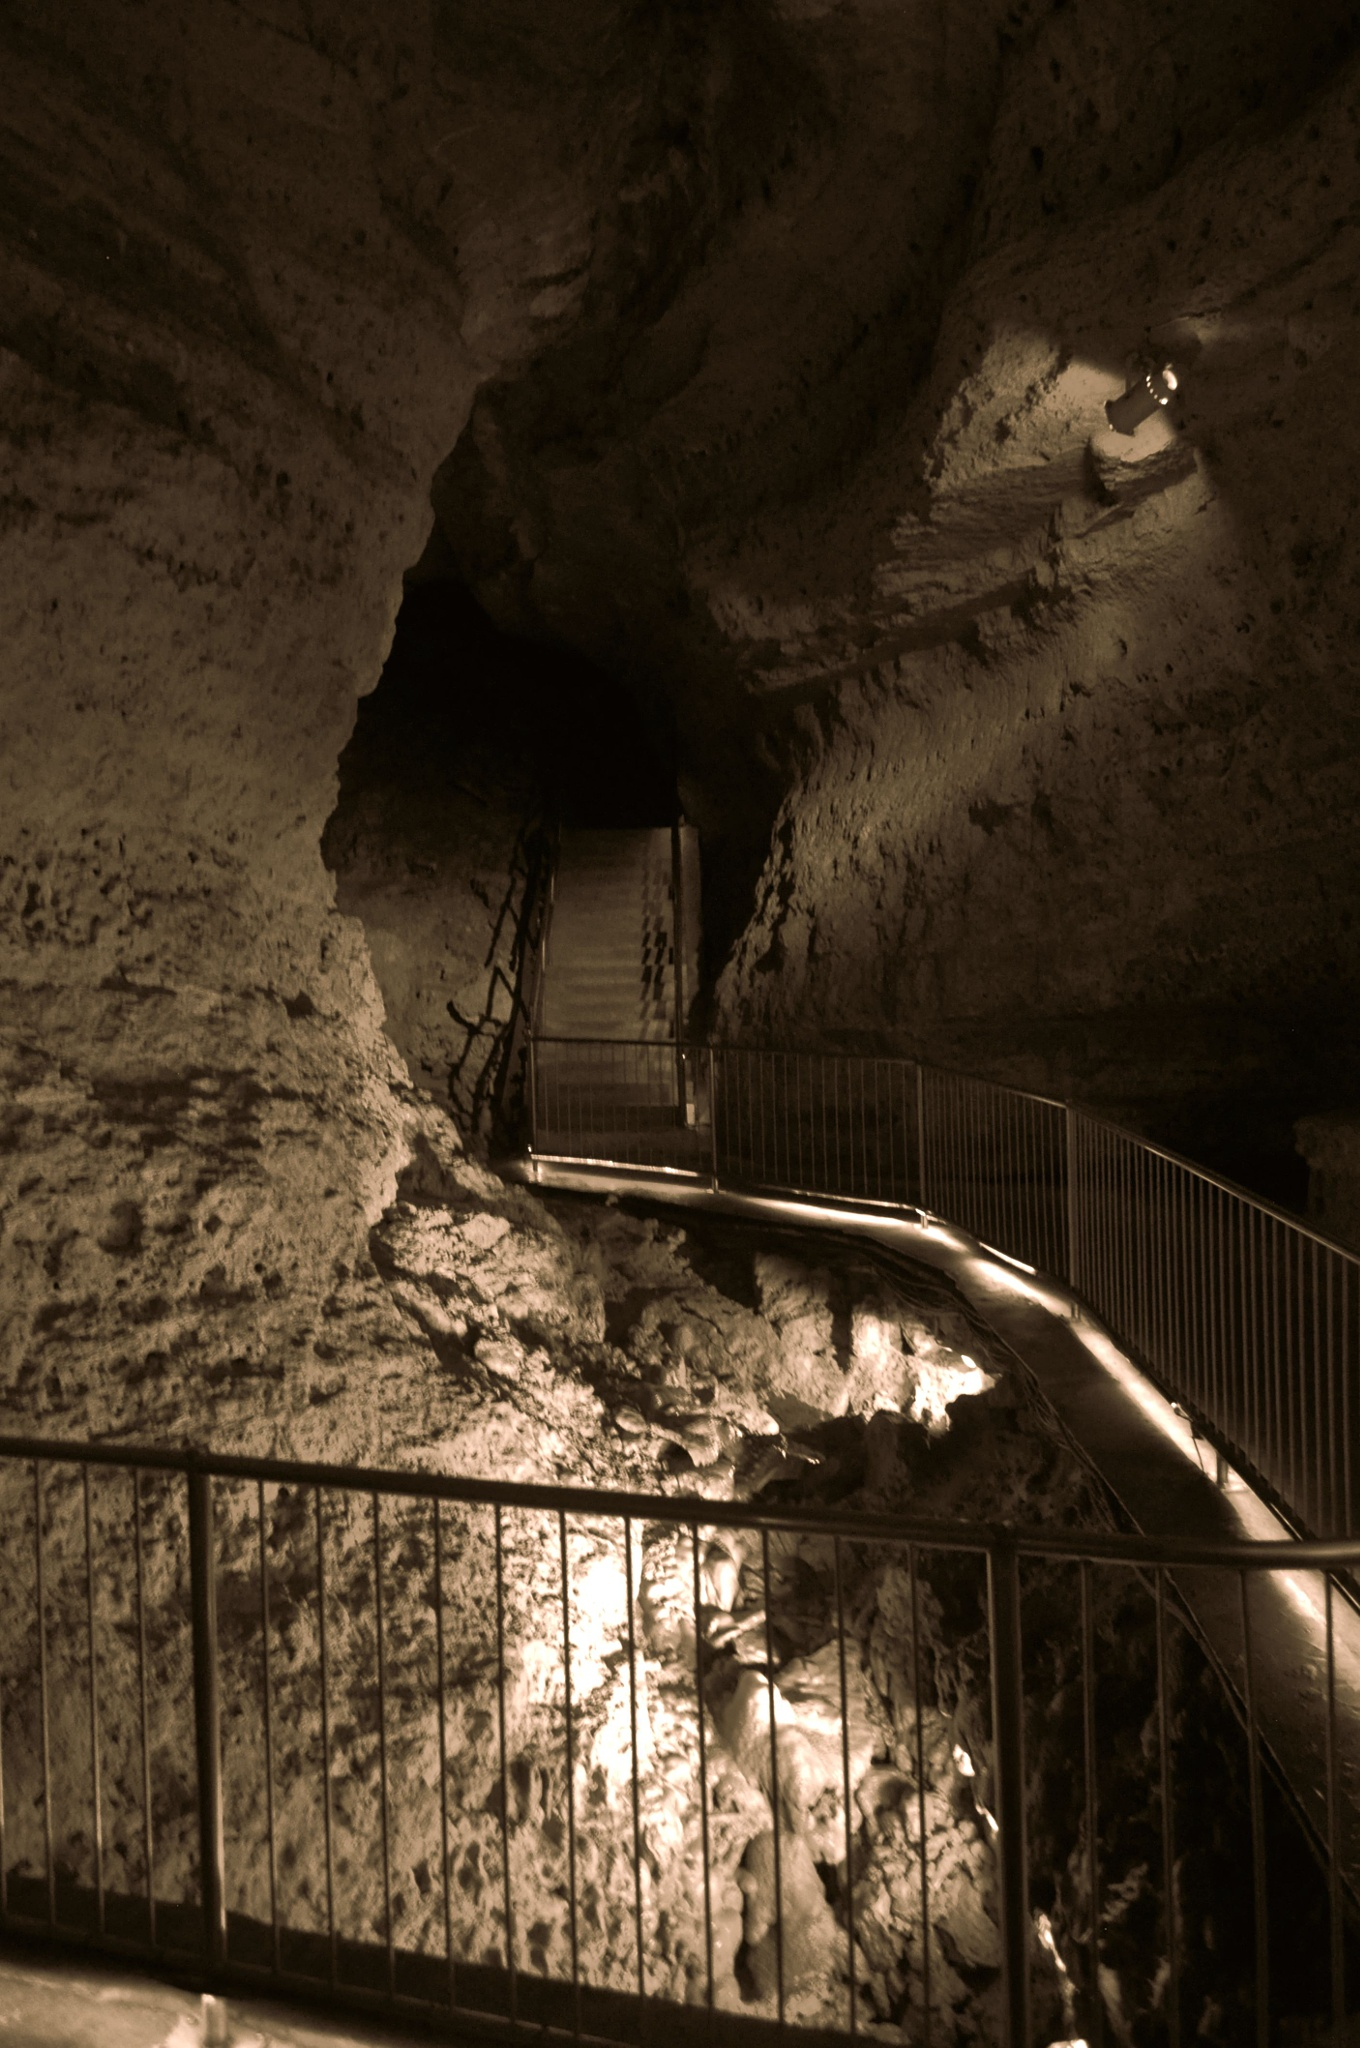 Stairway to Where by Christabell